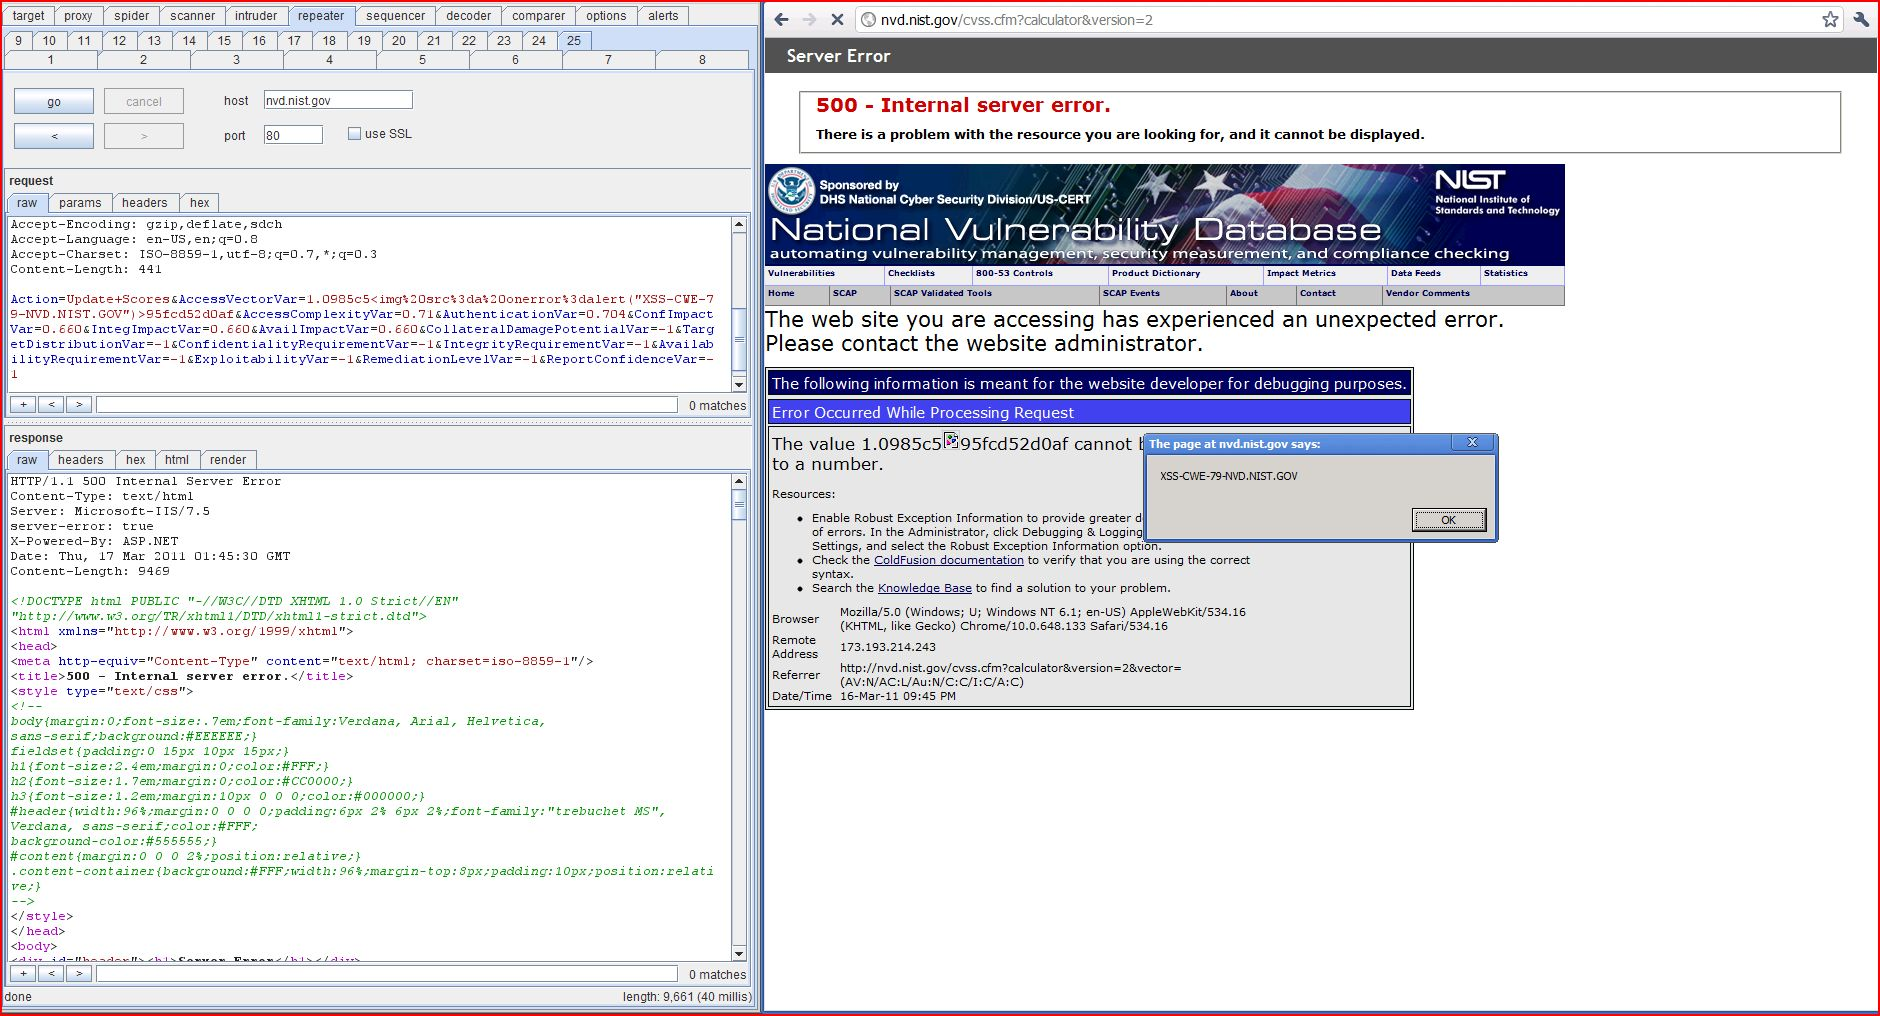 XSS in nvd.nist.gov, DORK, Cross Site Scripting, CWE-79, CAPEC-86